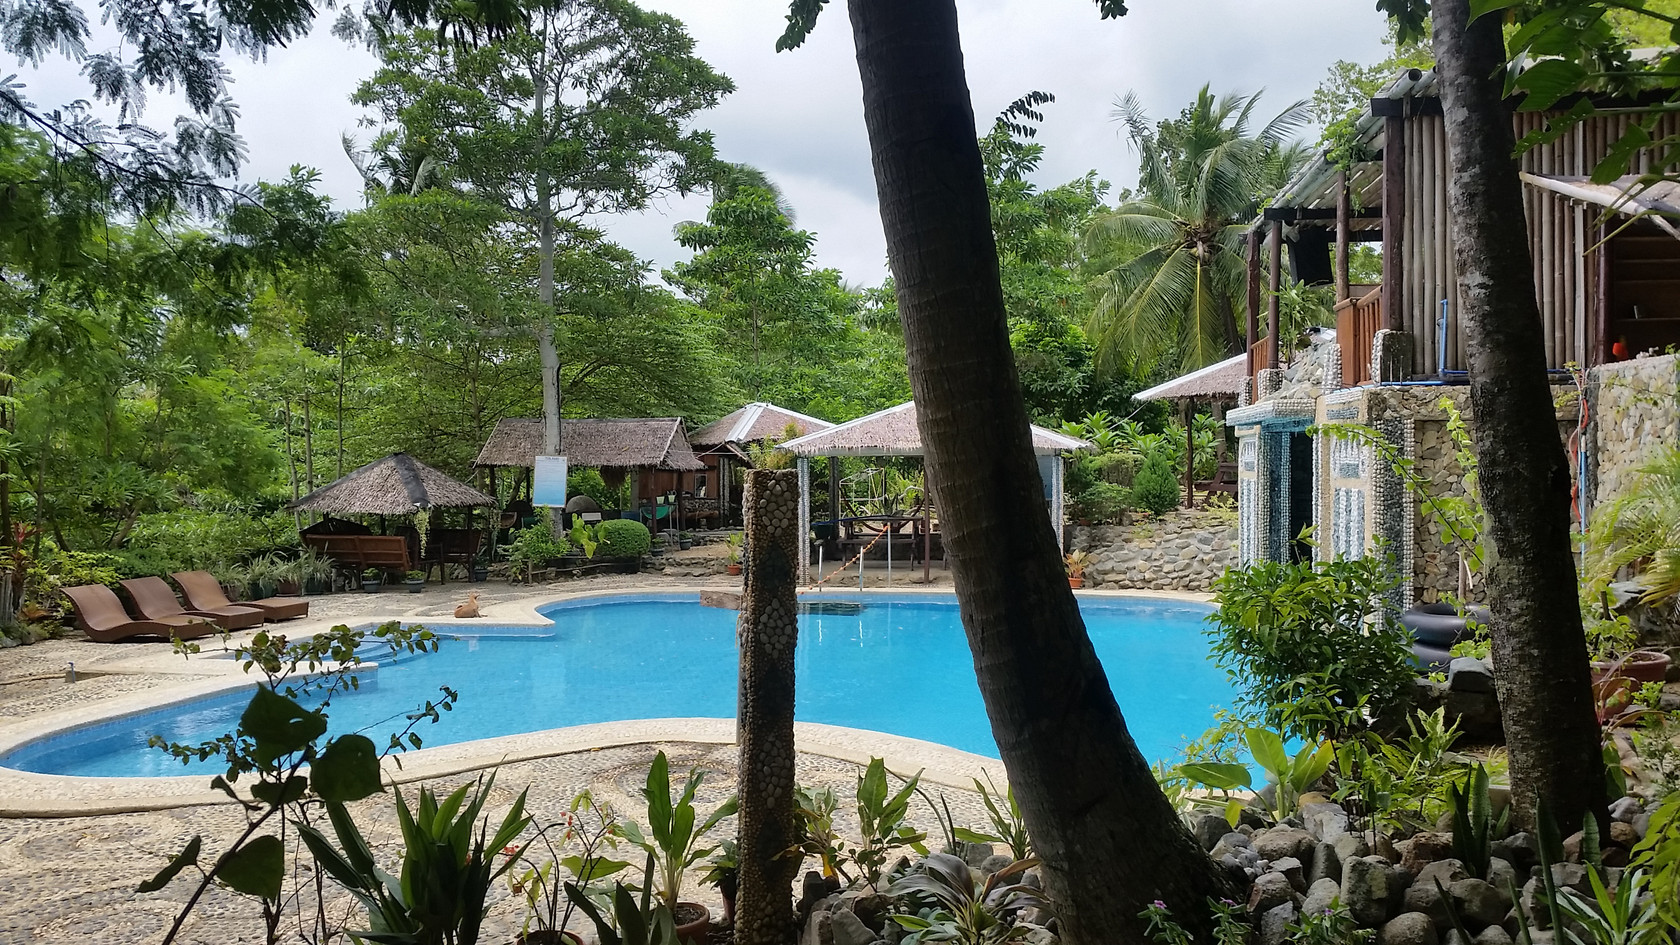 Cottage View of Pool